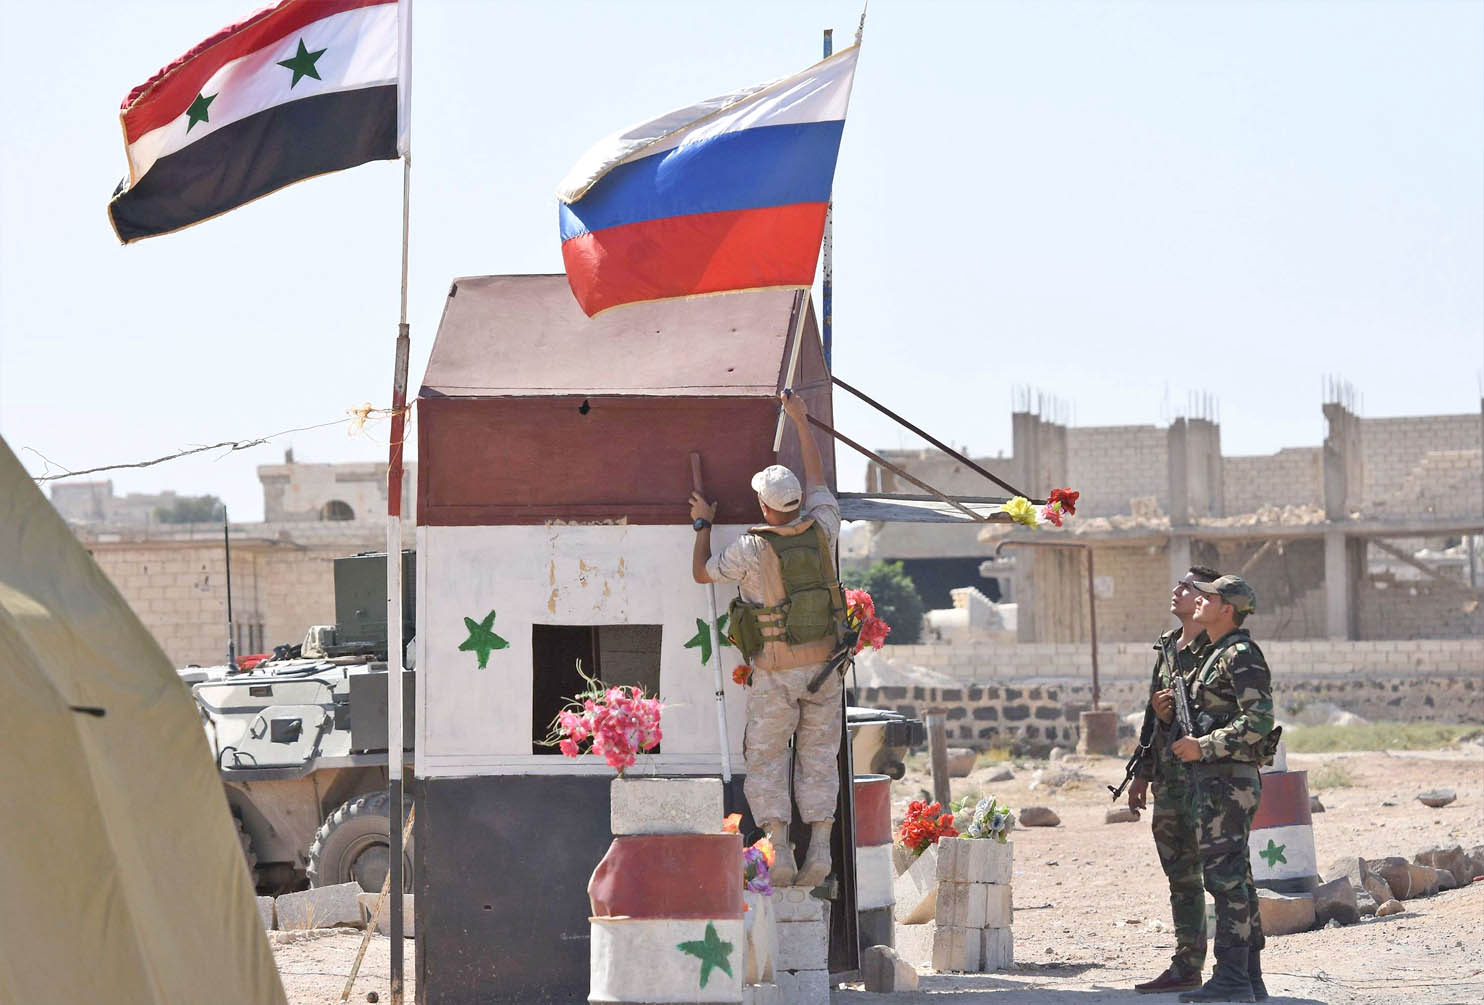 A Russian soldier places the national flag at the Abu Duhur crossing on the eastern edge of Idlib. (AFP)